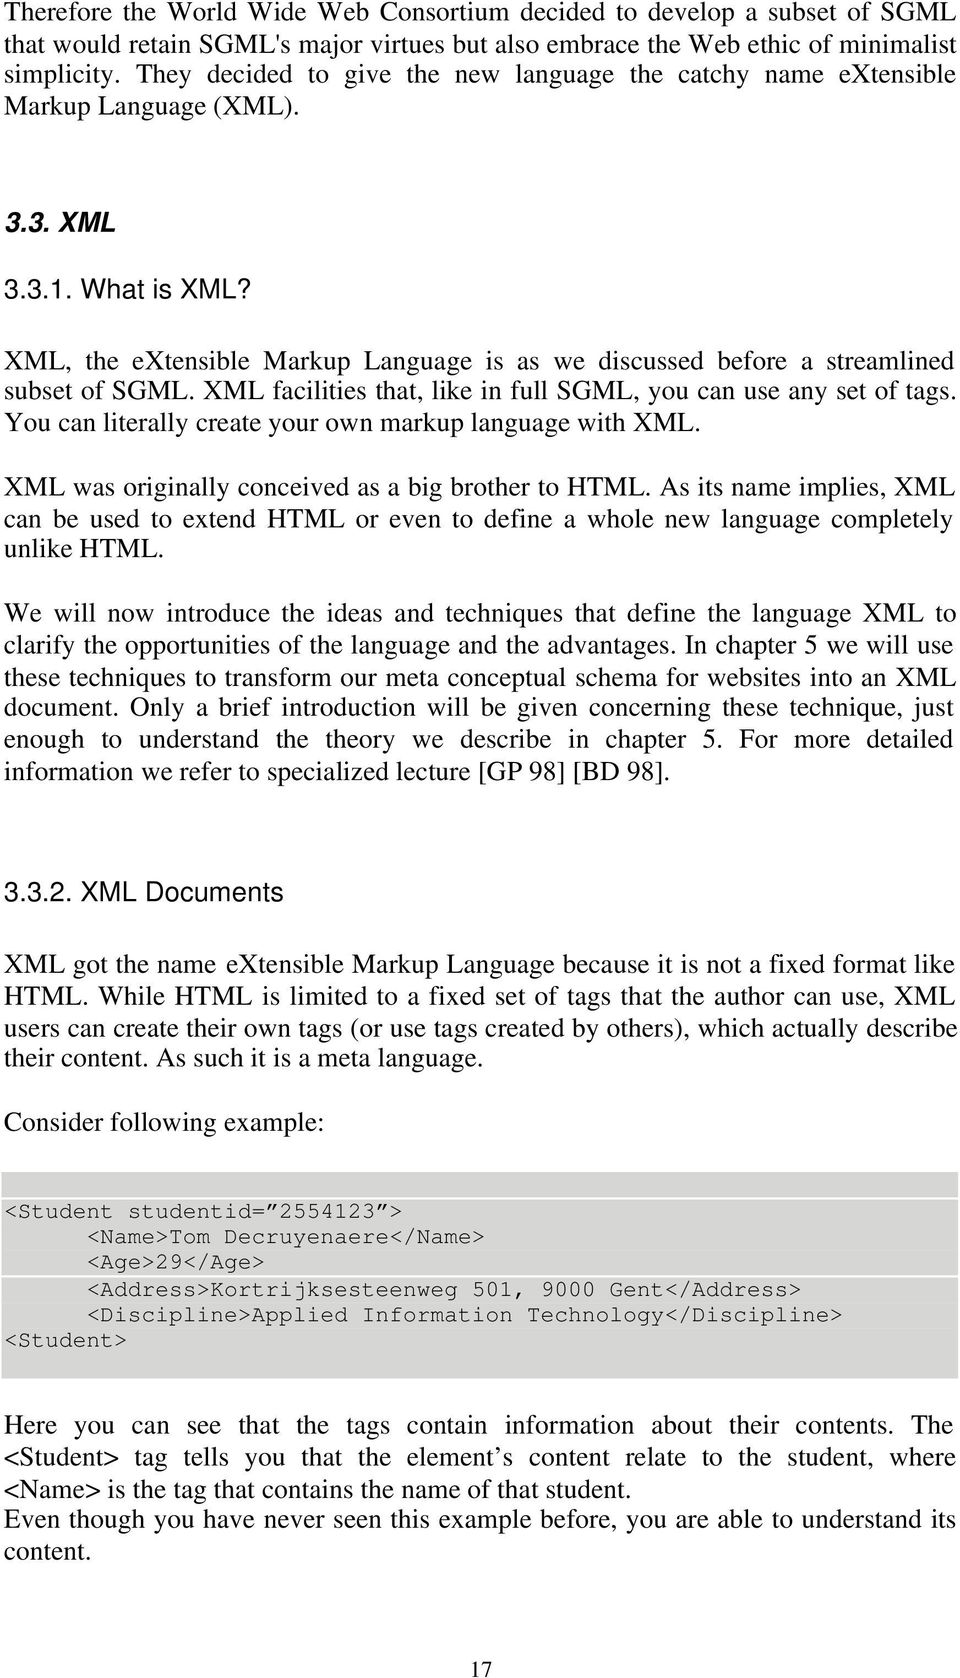 XML, the extensible Markup Language is as we discussed before a streamlined subset of SGML. XML facilities that, like in full SGML, you can use any set of tags.